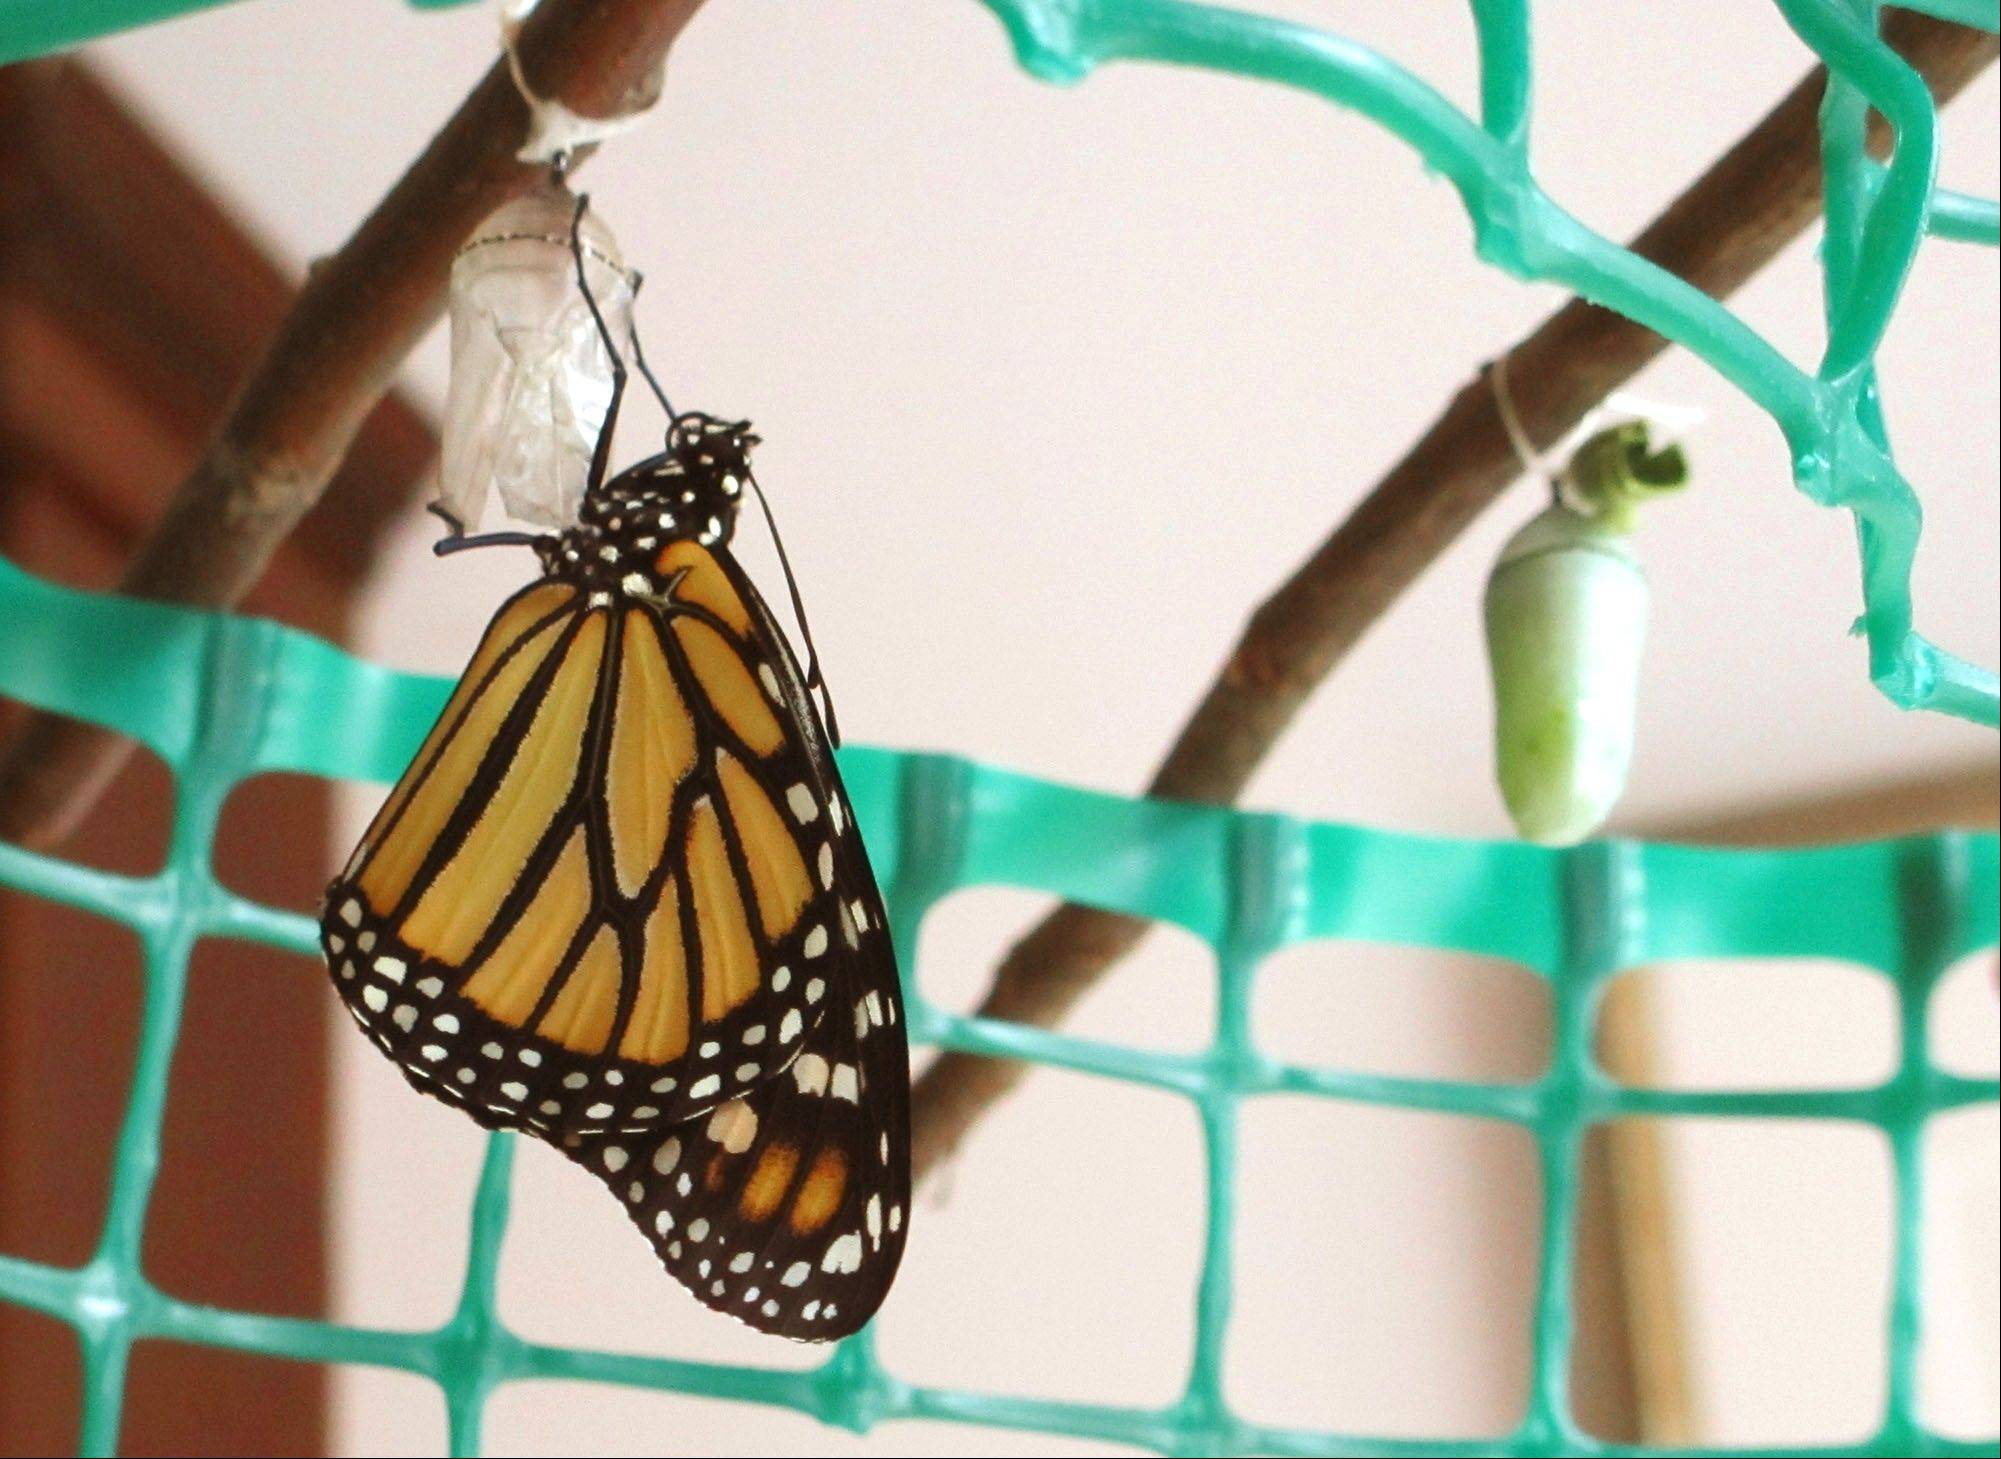 A newly hatched butterfly that Sharon Metcalf raised in early summer. The monarchs distinctive green chrysalis can be seen in the background.